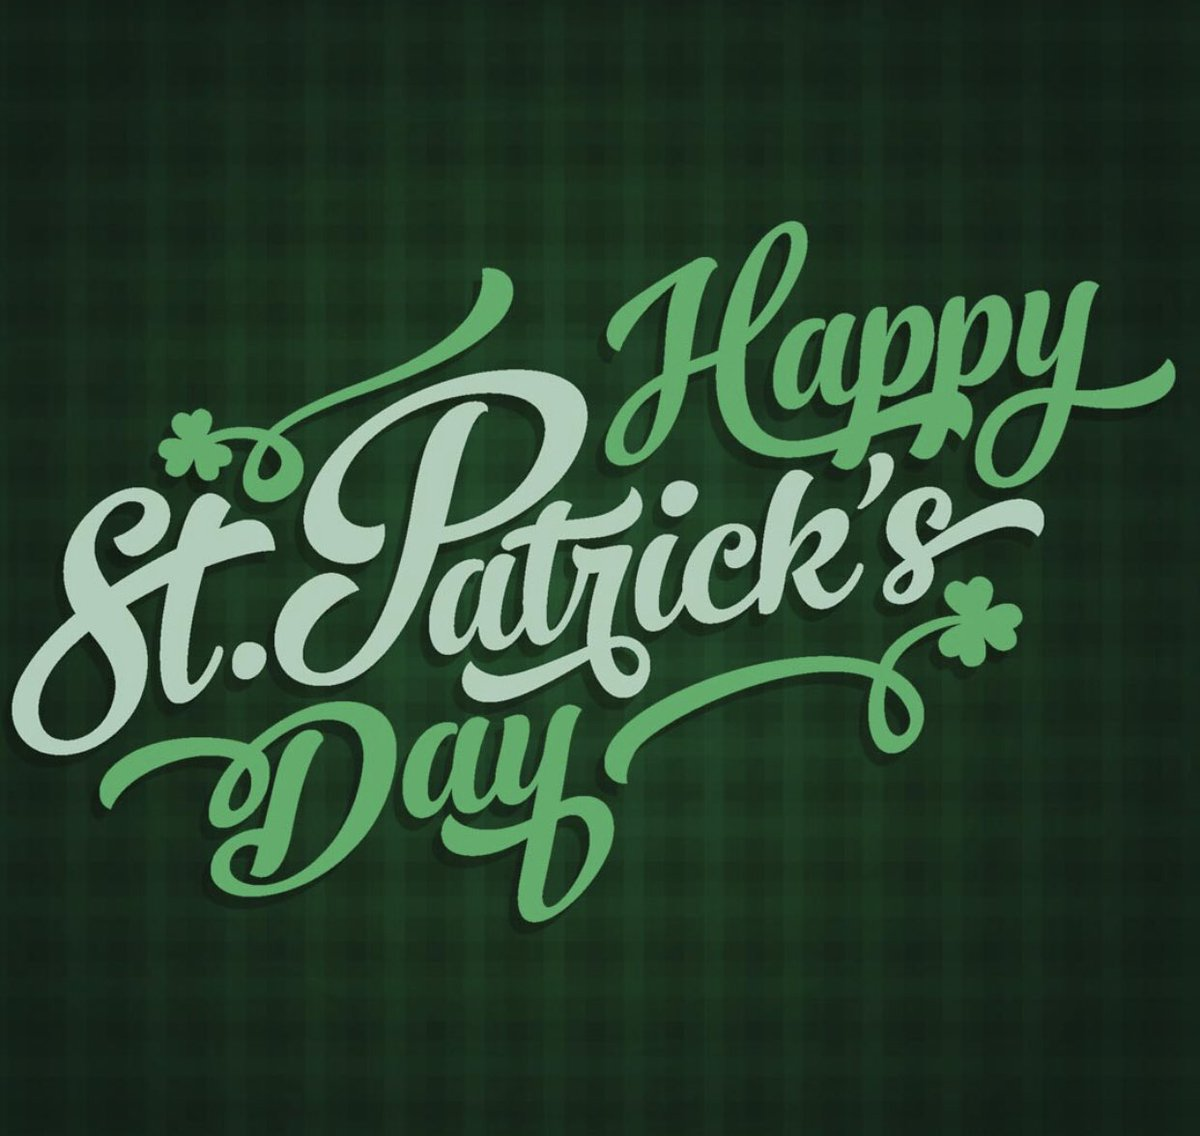 May the luck of the Irish be with you!